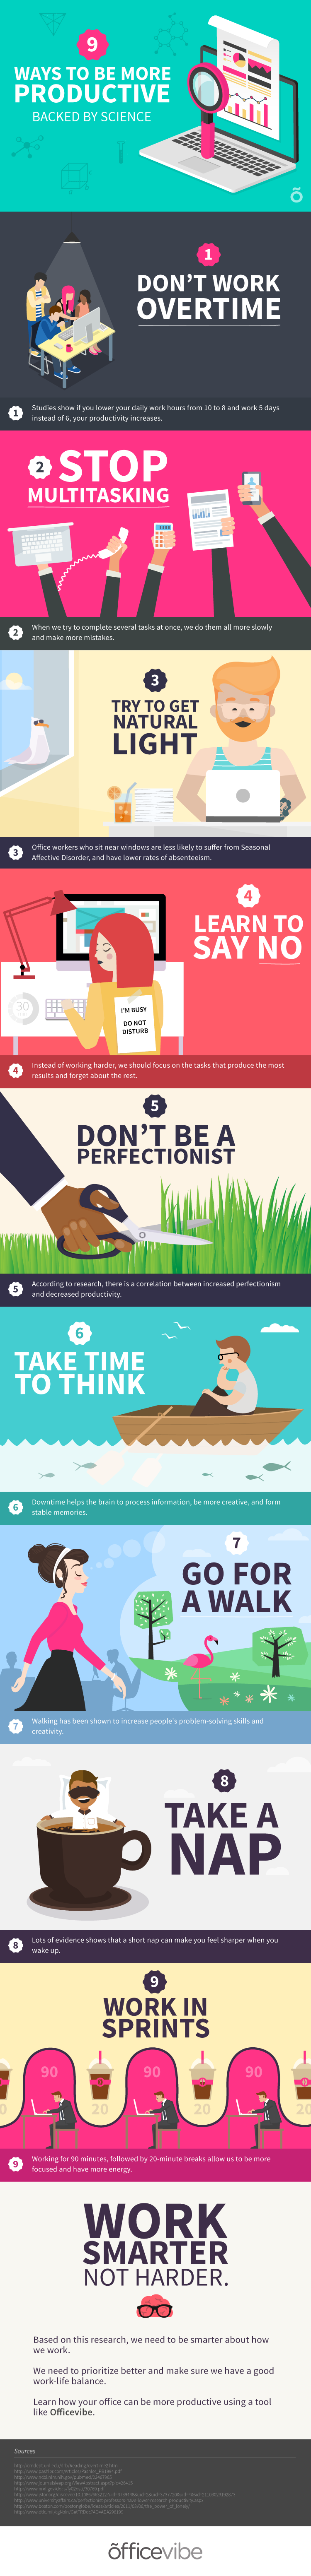 9 Ways To Be More Productive (Infographic)